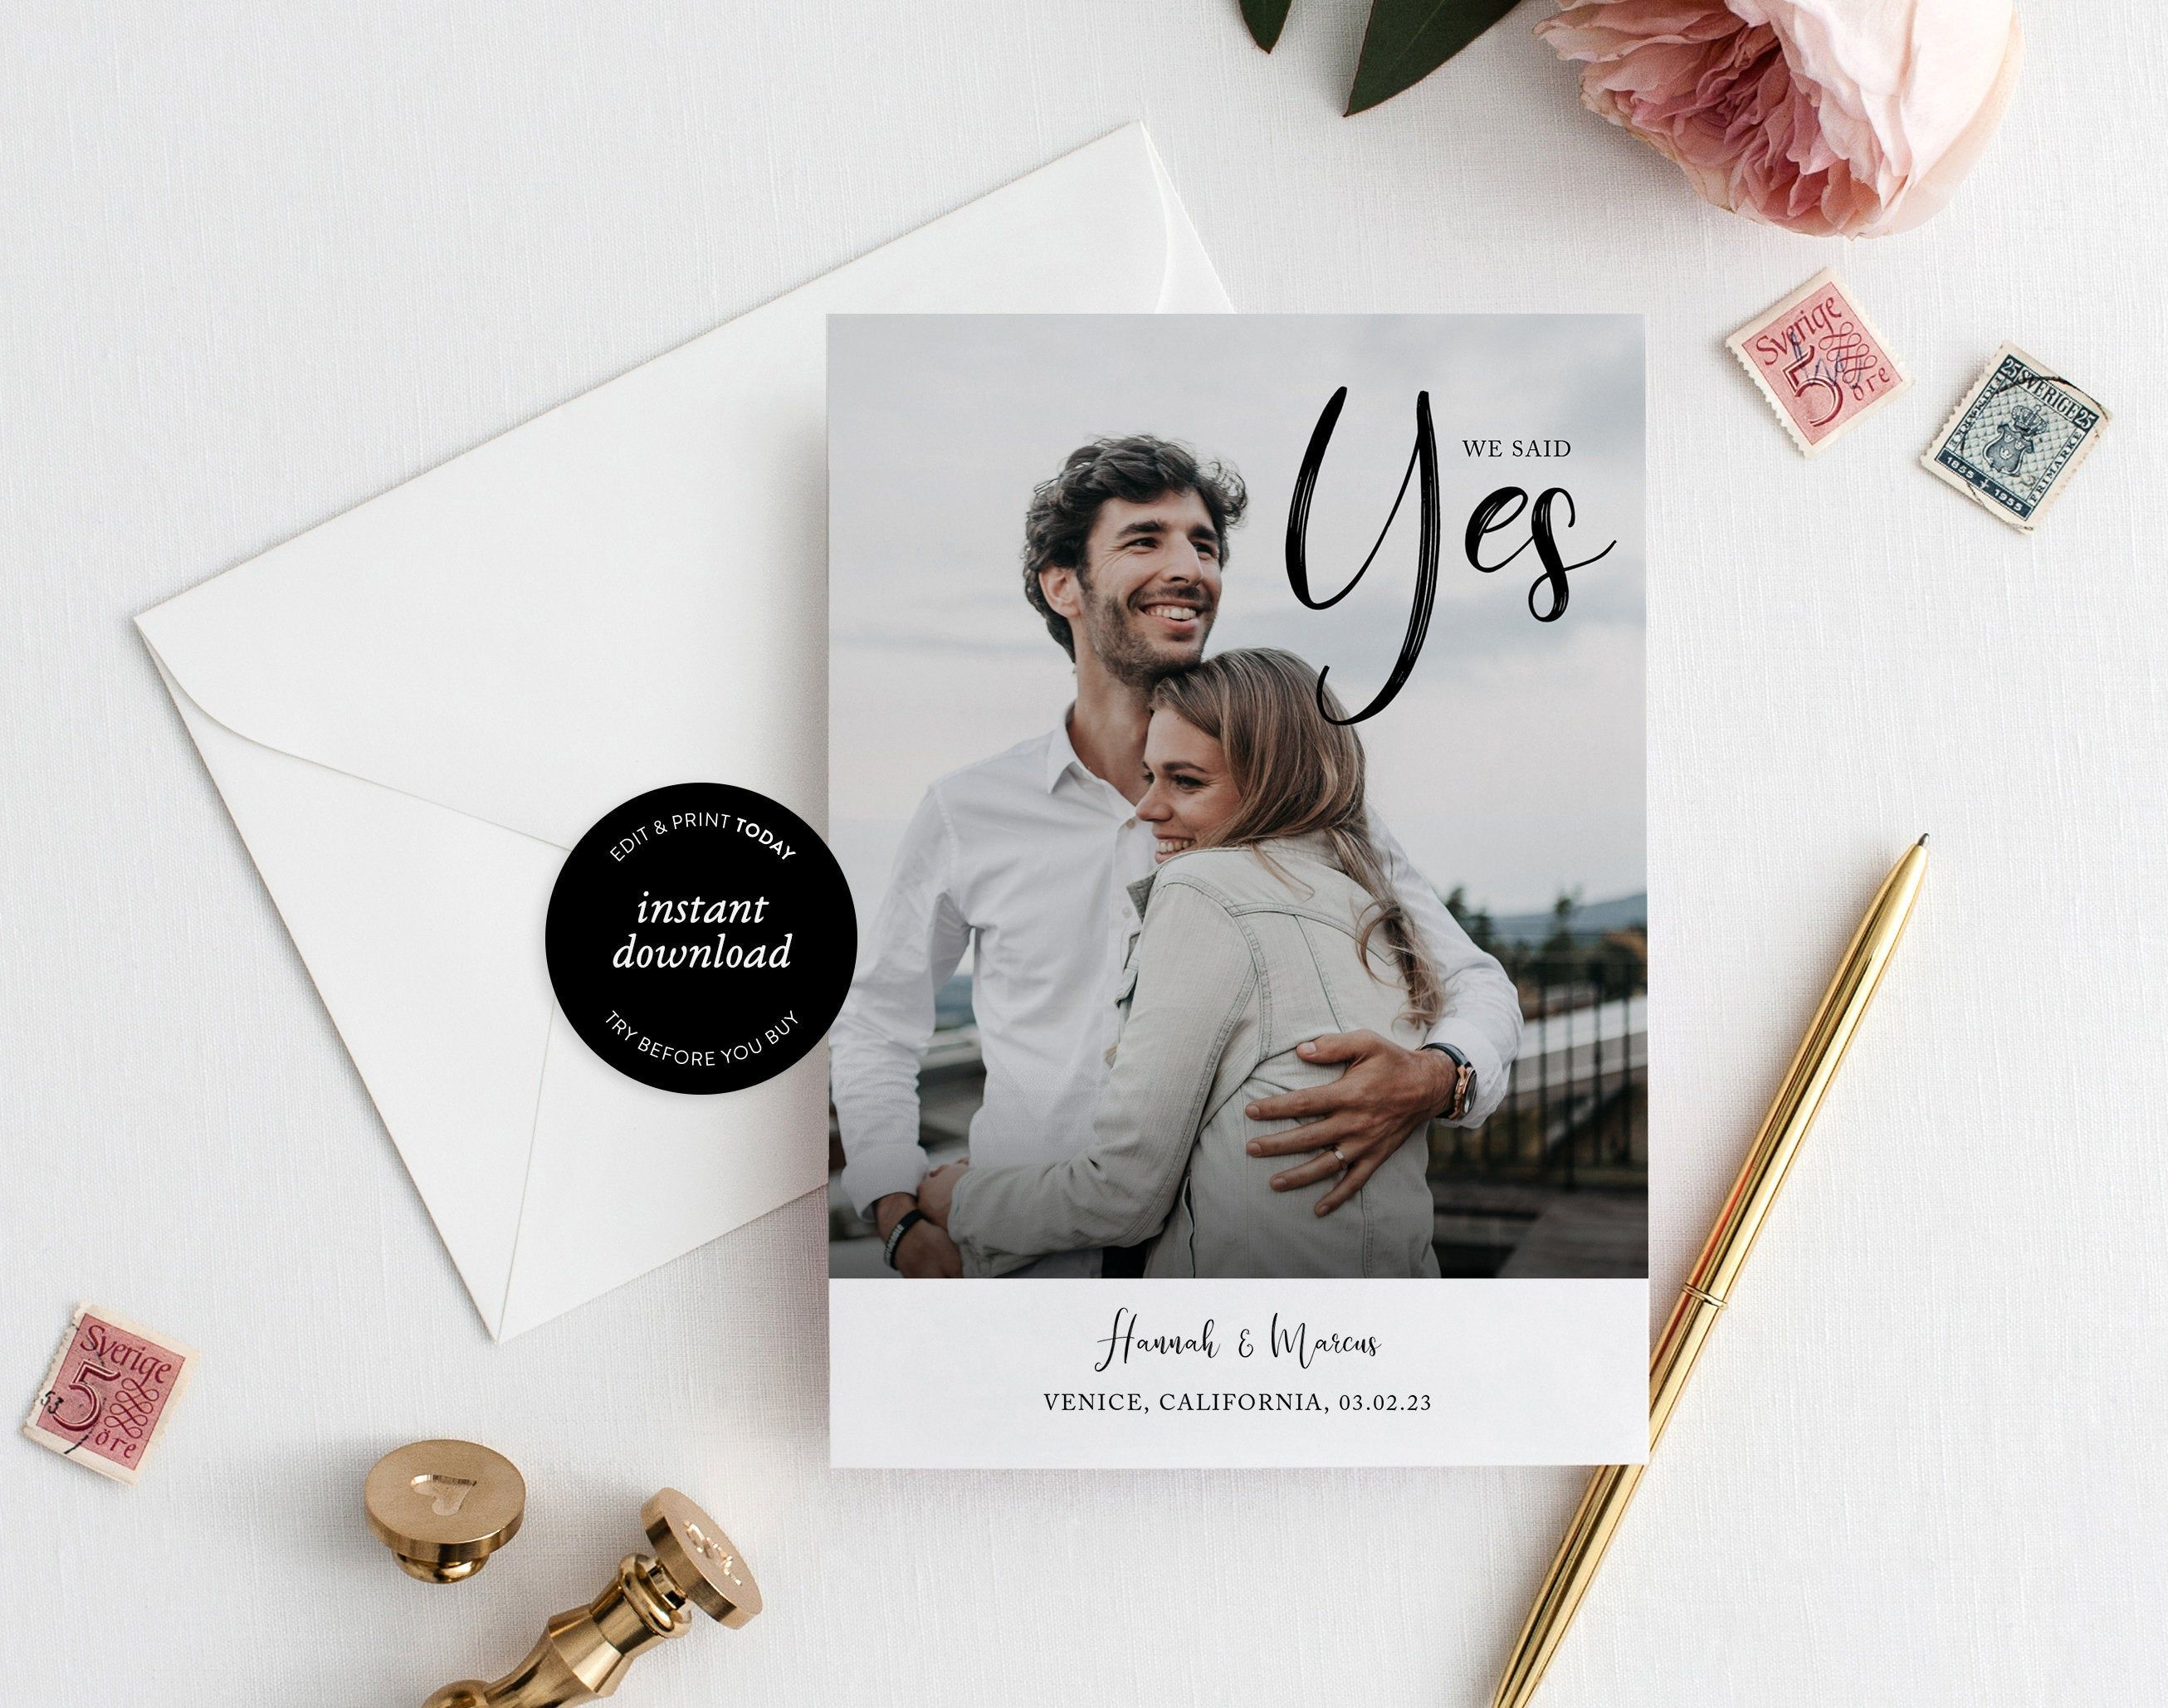 Save The Date Template We Said Yes 100 Editable Etsy In 2021 Save The Date Templates Calligraphy Save The Dates Save The Date